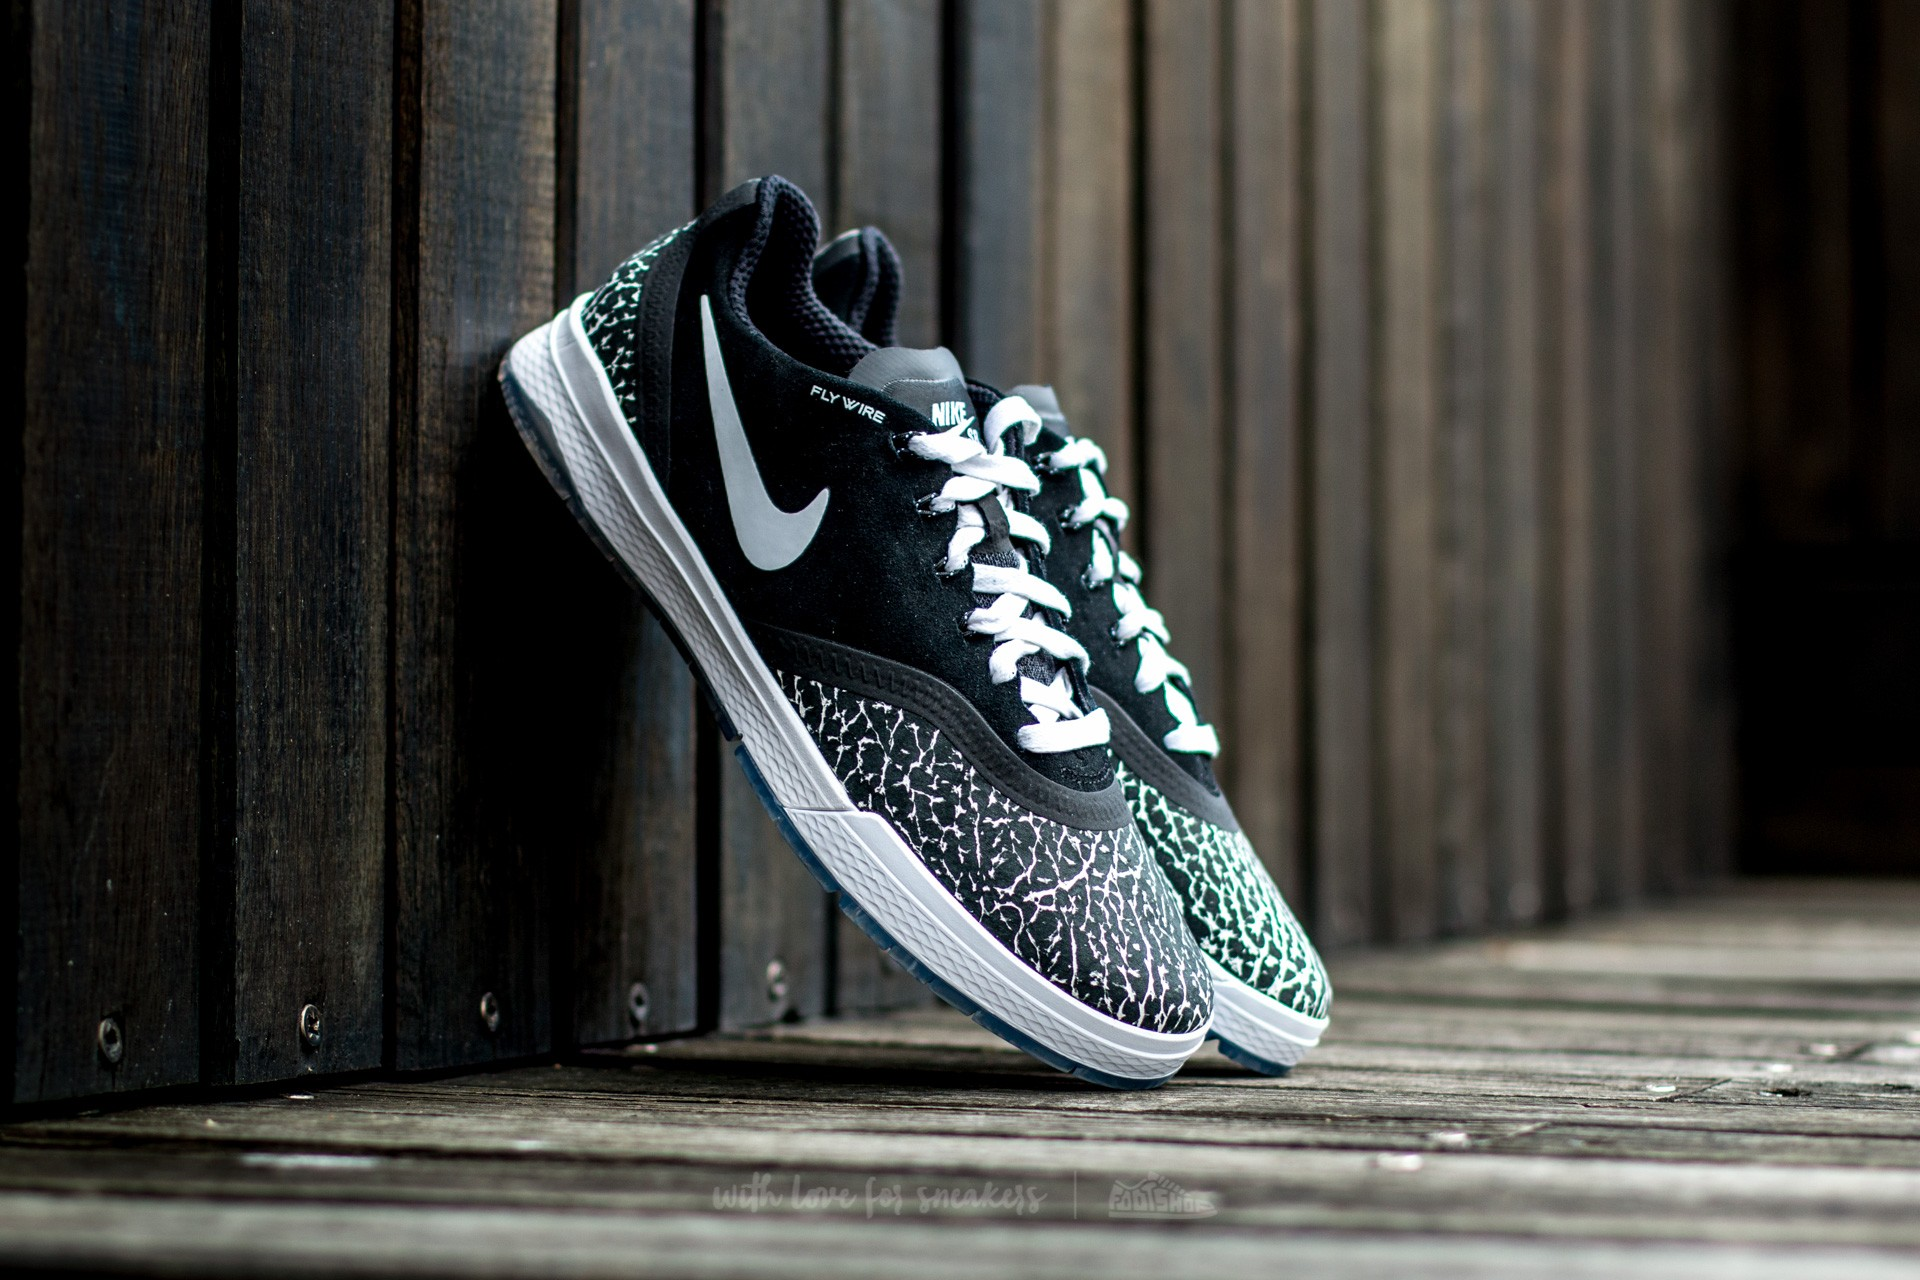 Nike Paul Rodriguez 9 Elite T Black/ White